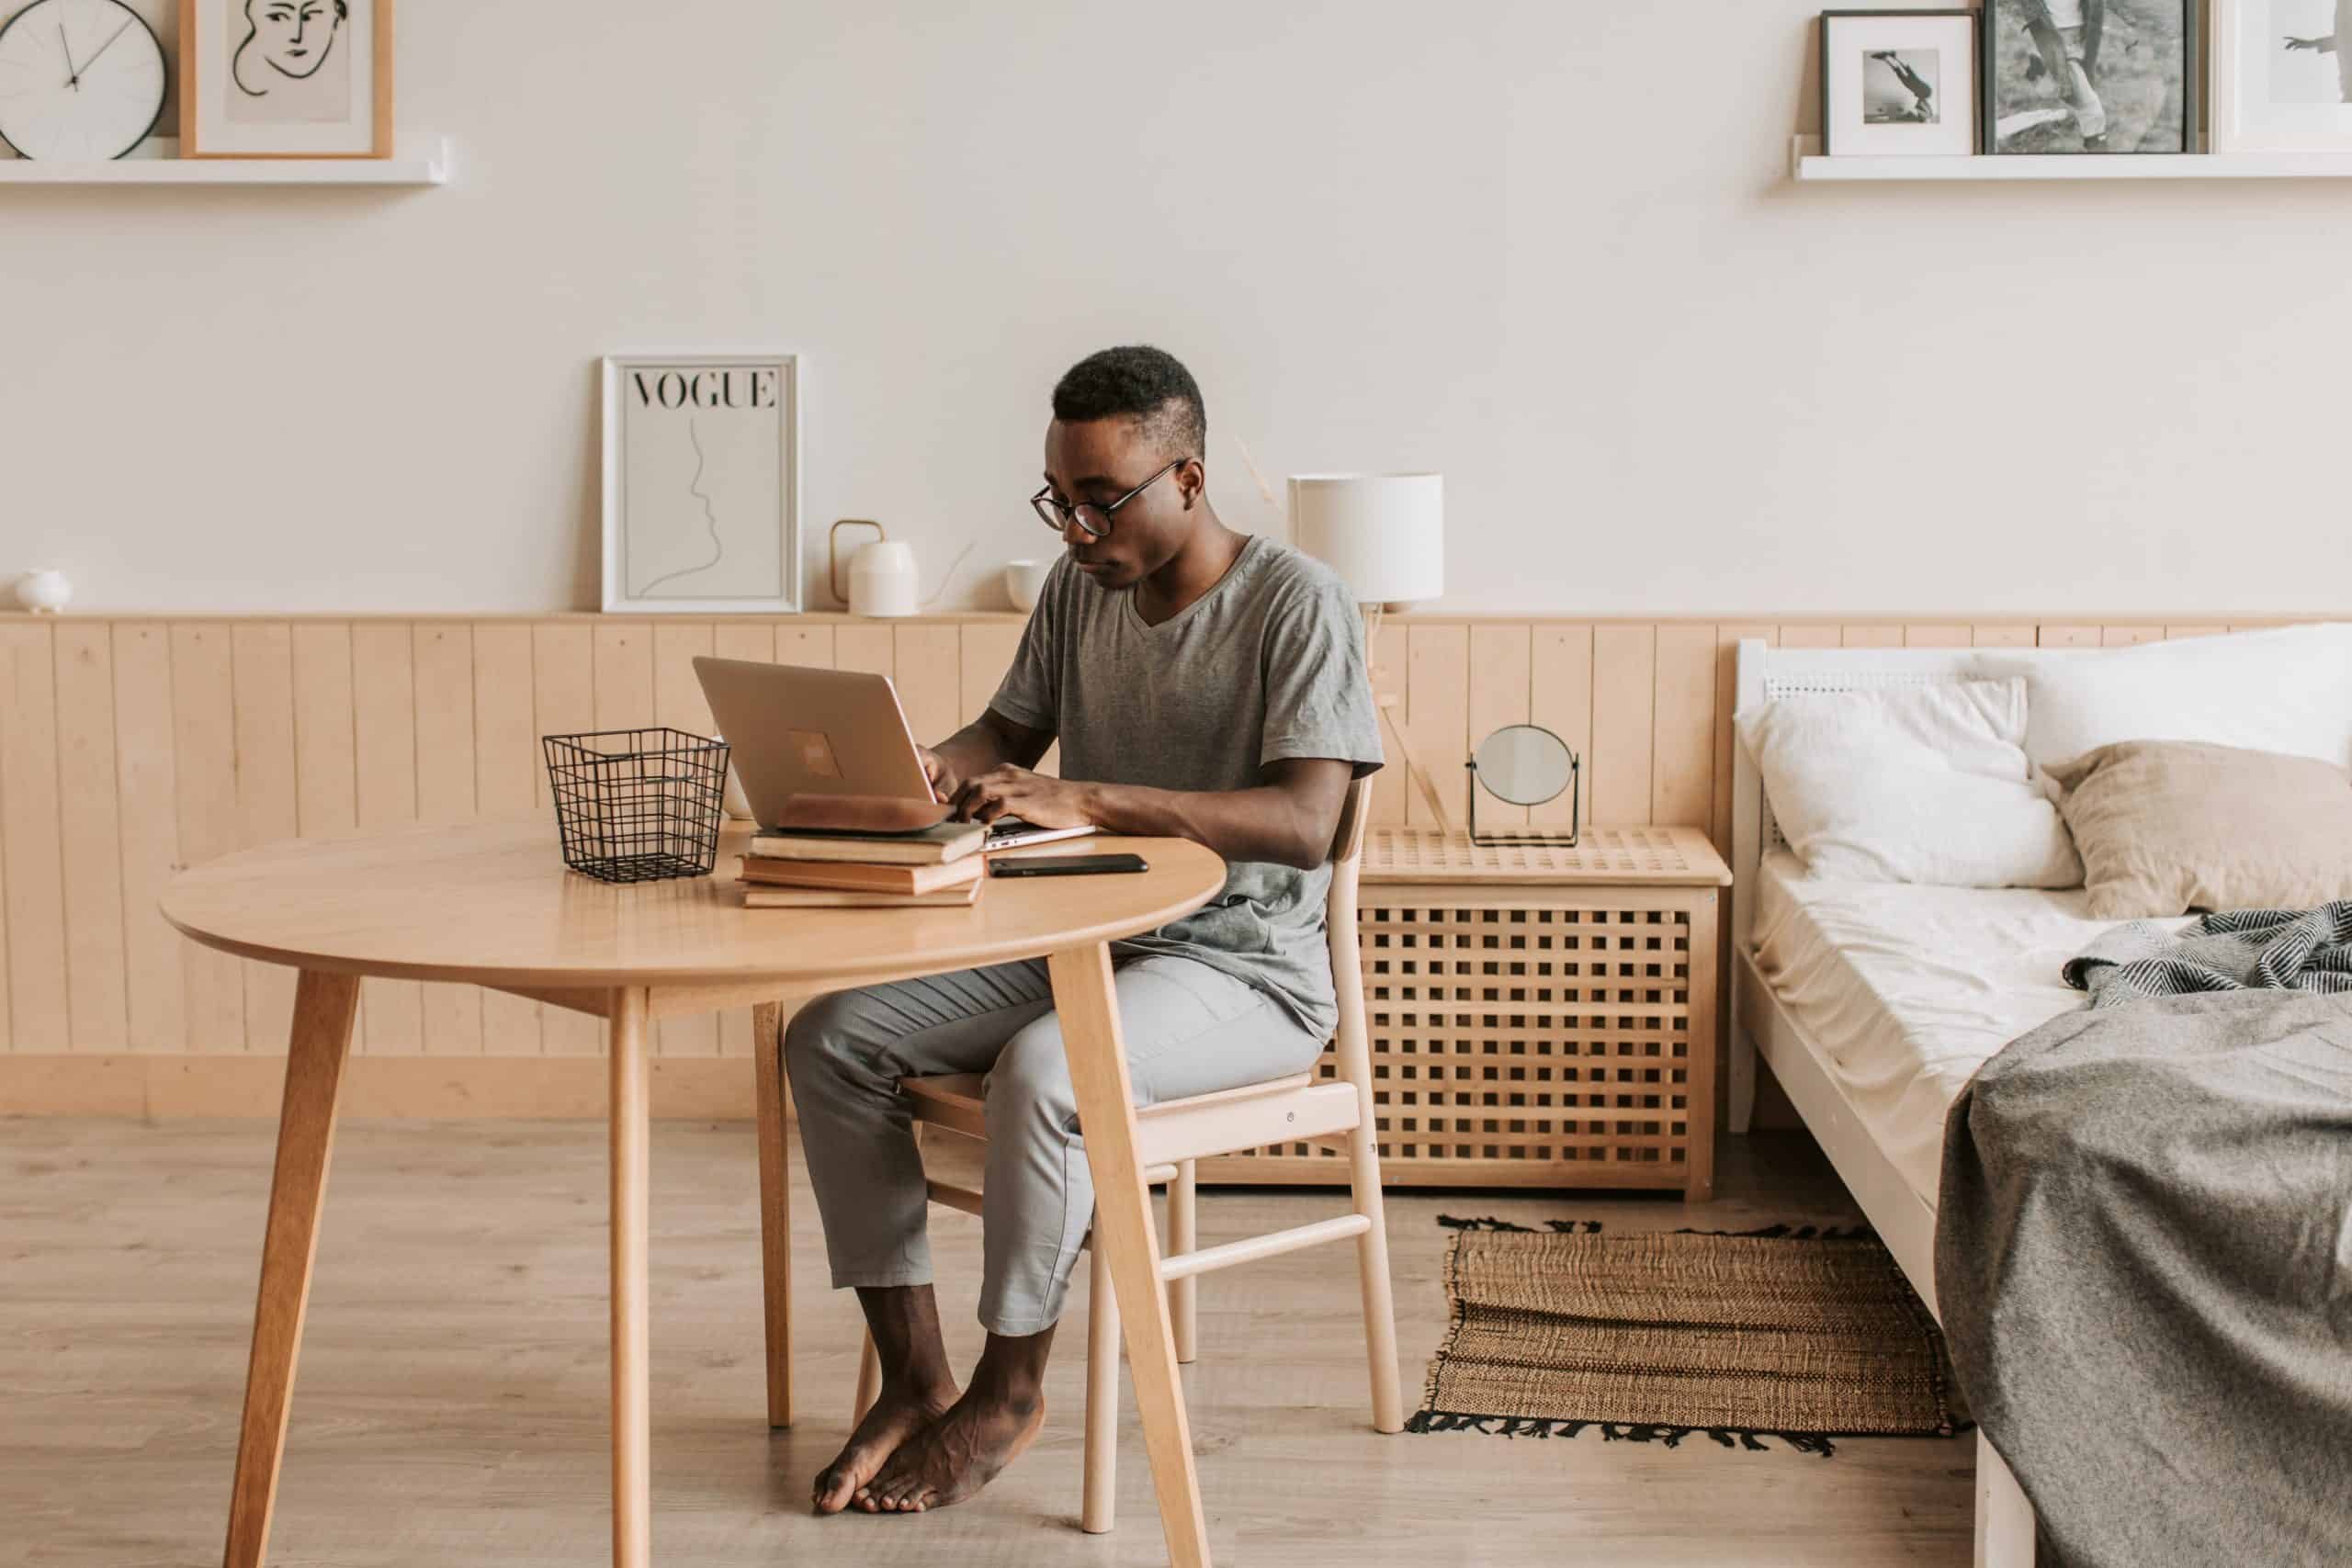 5 Ways to Manage Poor Workplace Performance Among Remote Workers